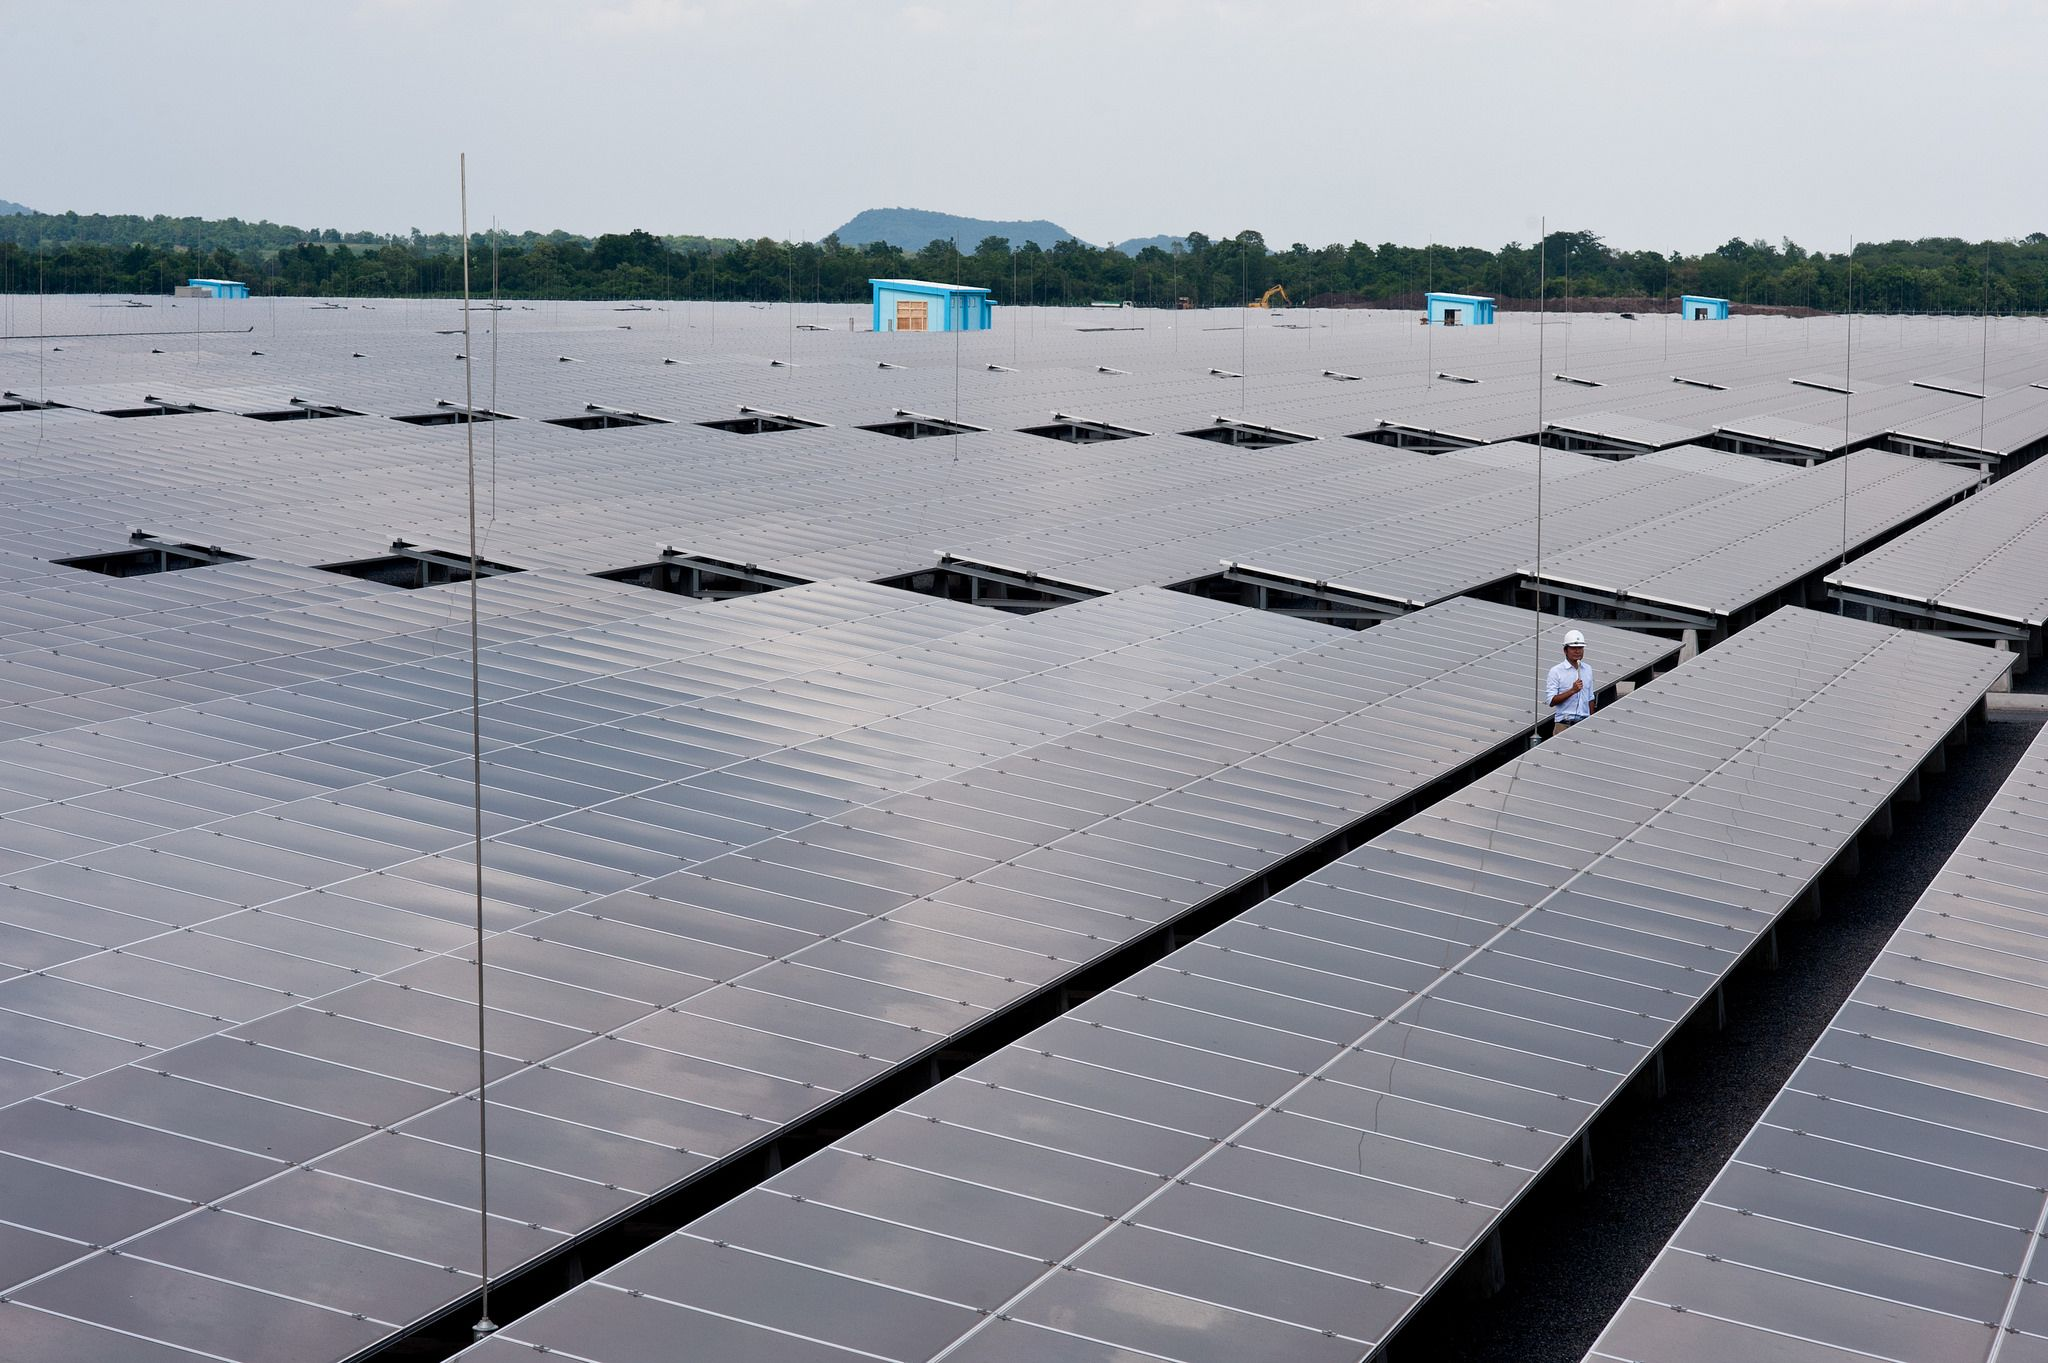 The Evaluation of Feed-in Tariff Models for #Photovoltaic System in #Thailand #SolarEnergy #SolarRooftop